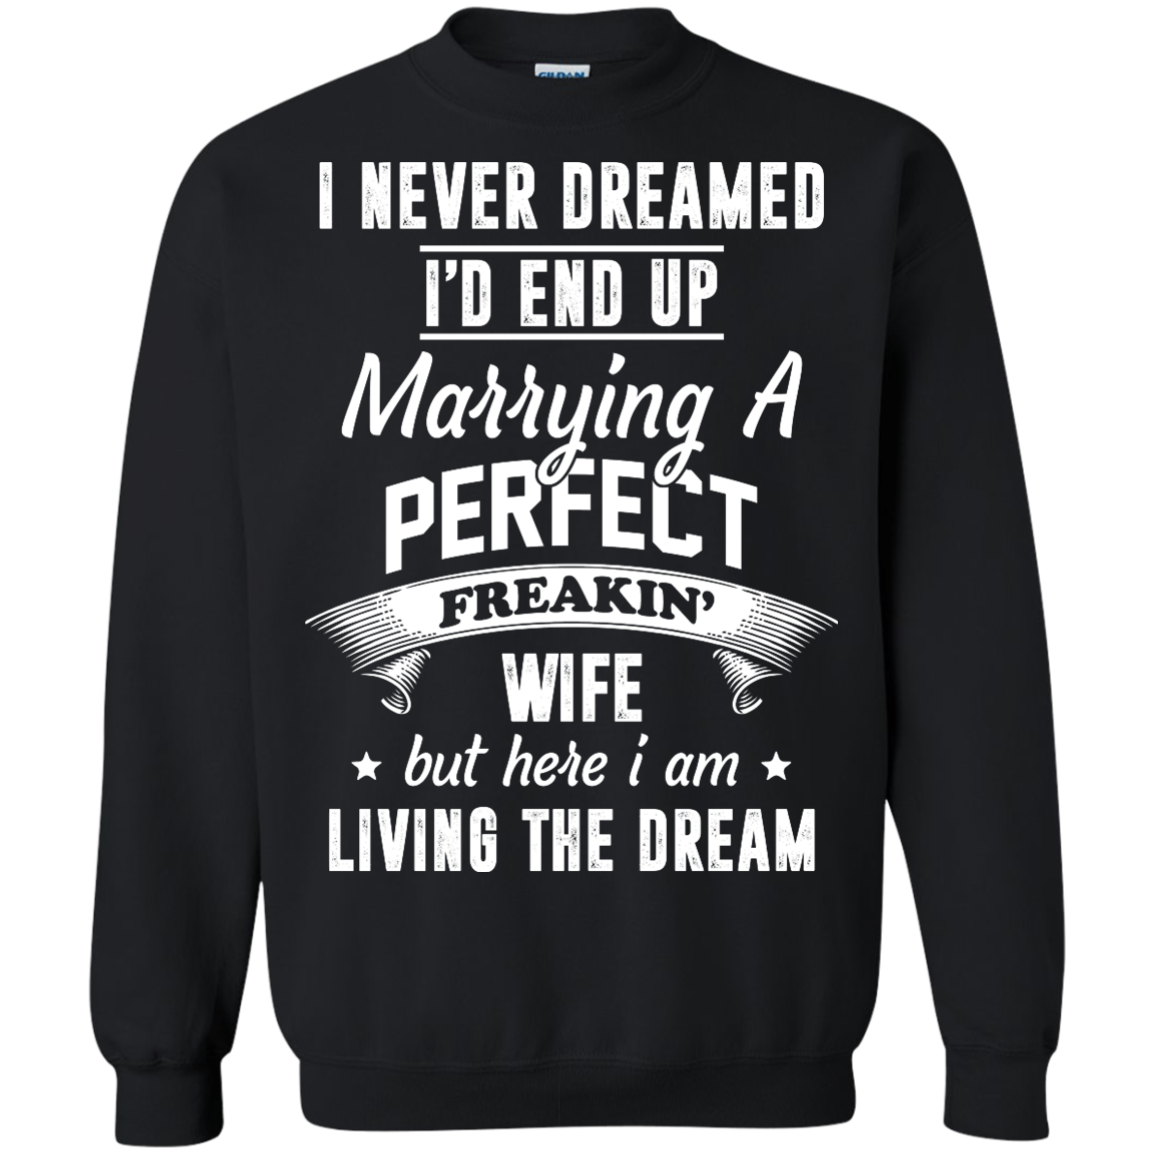 I Never Dreamed I'd End Up Marrying Perfect Freakin'Wife But Here I Am Living The Dream t-shirt,tank,hoodie,sweater